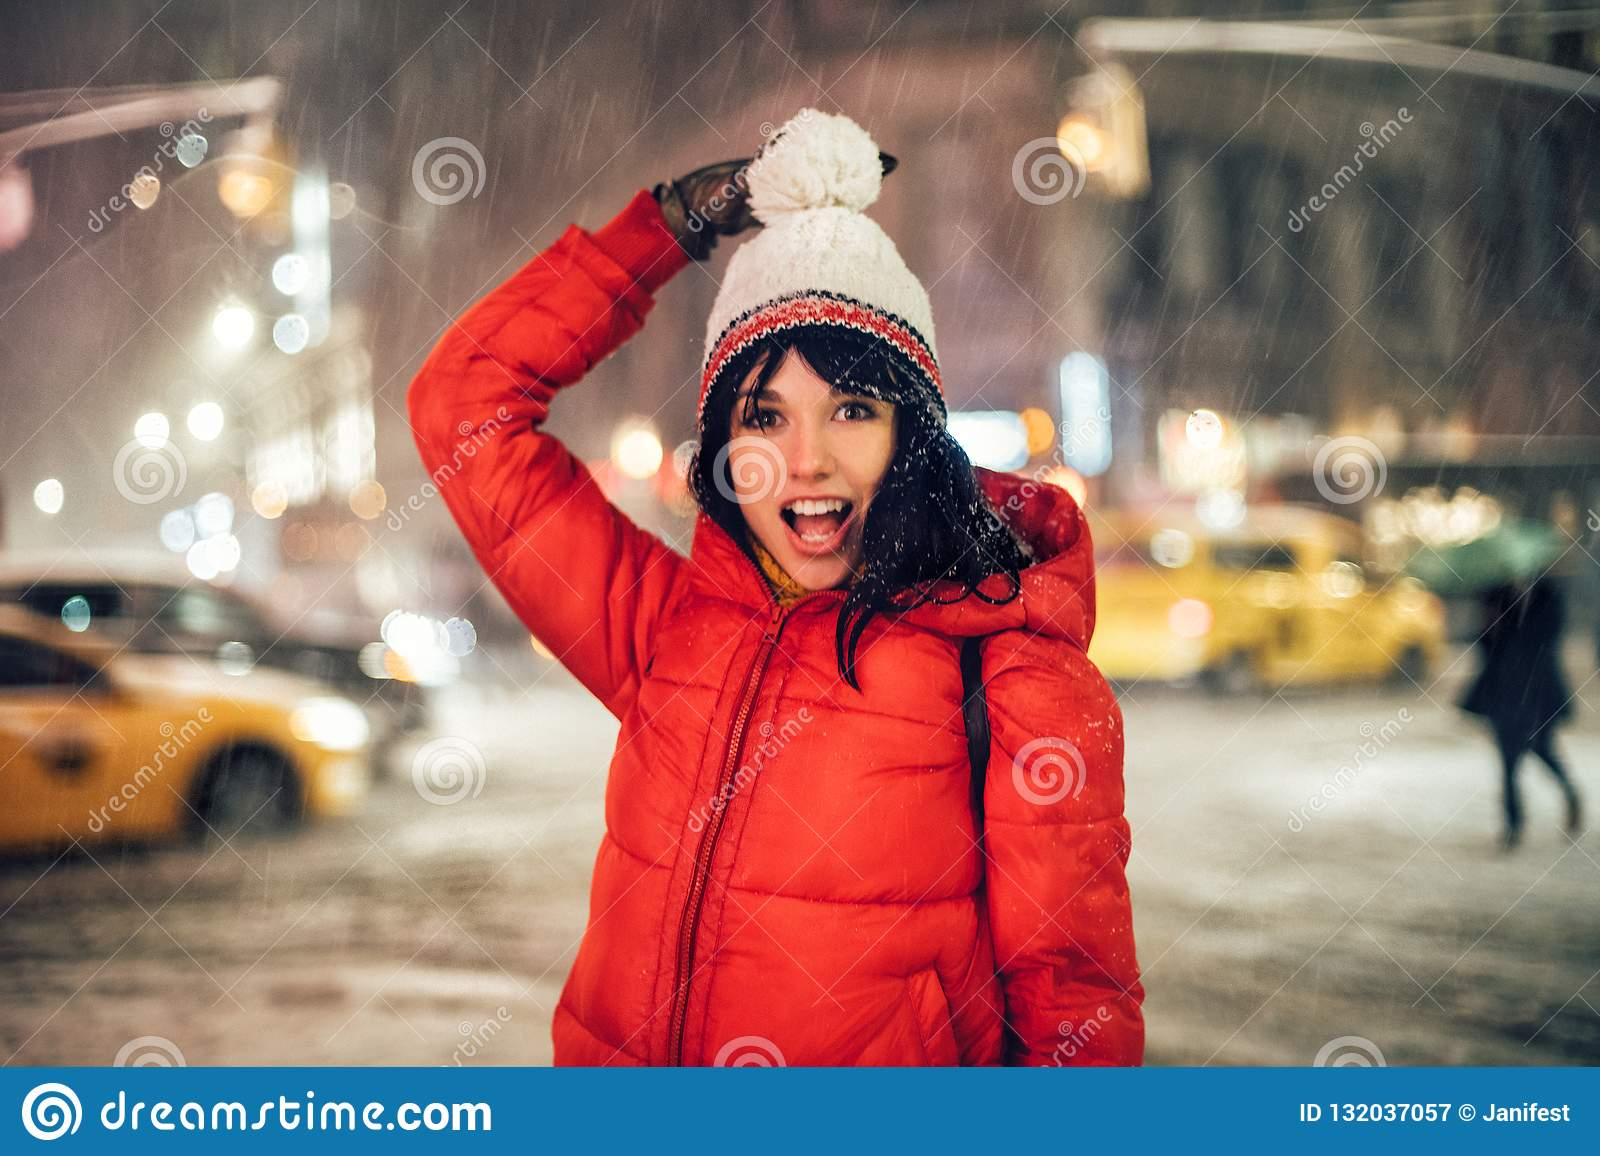 Happy exited woman having fun on city street of New York under the snow at winter time wearing hat and jacket.